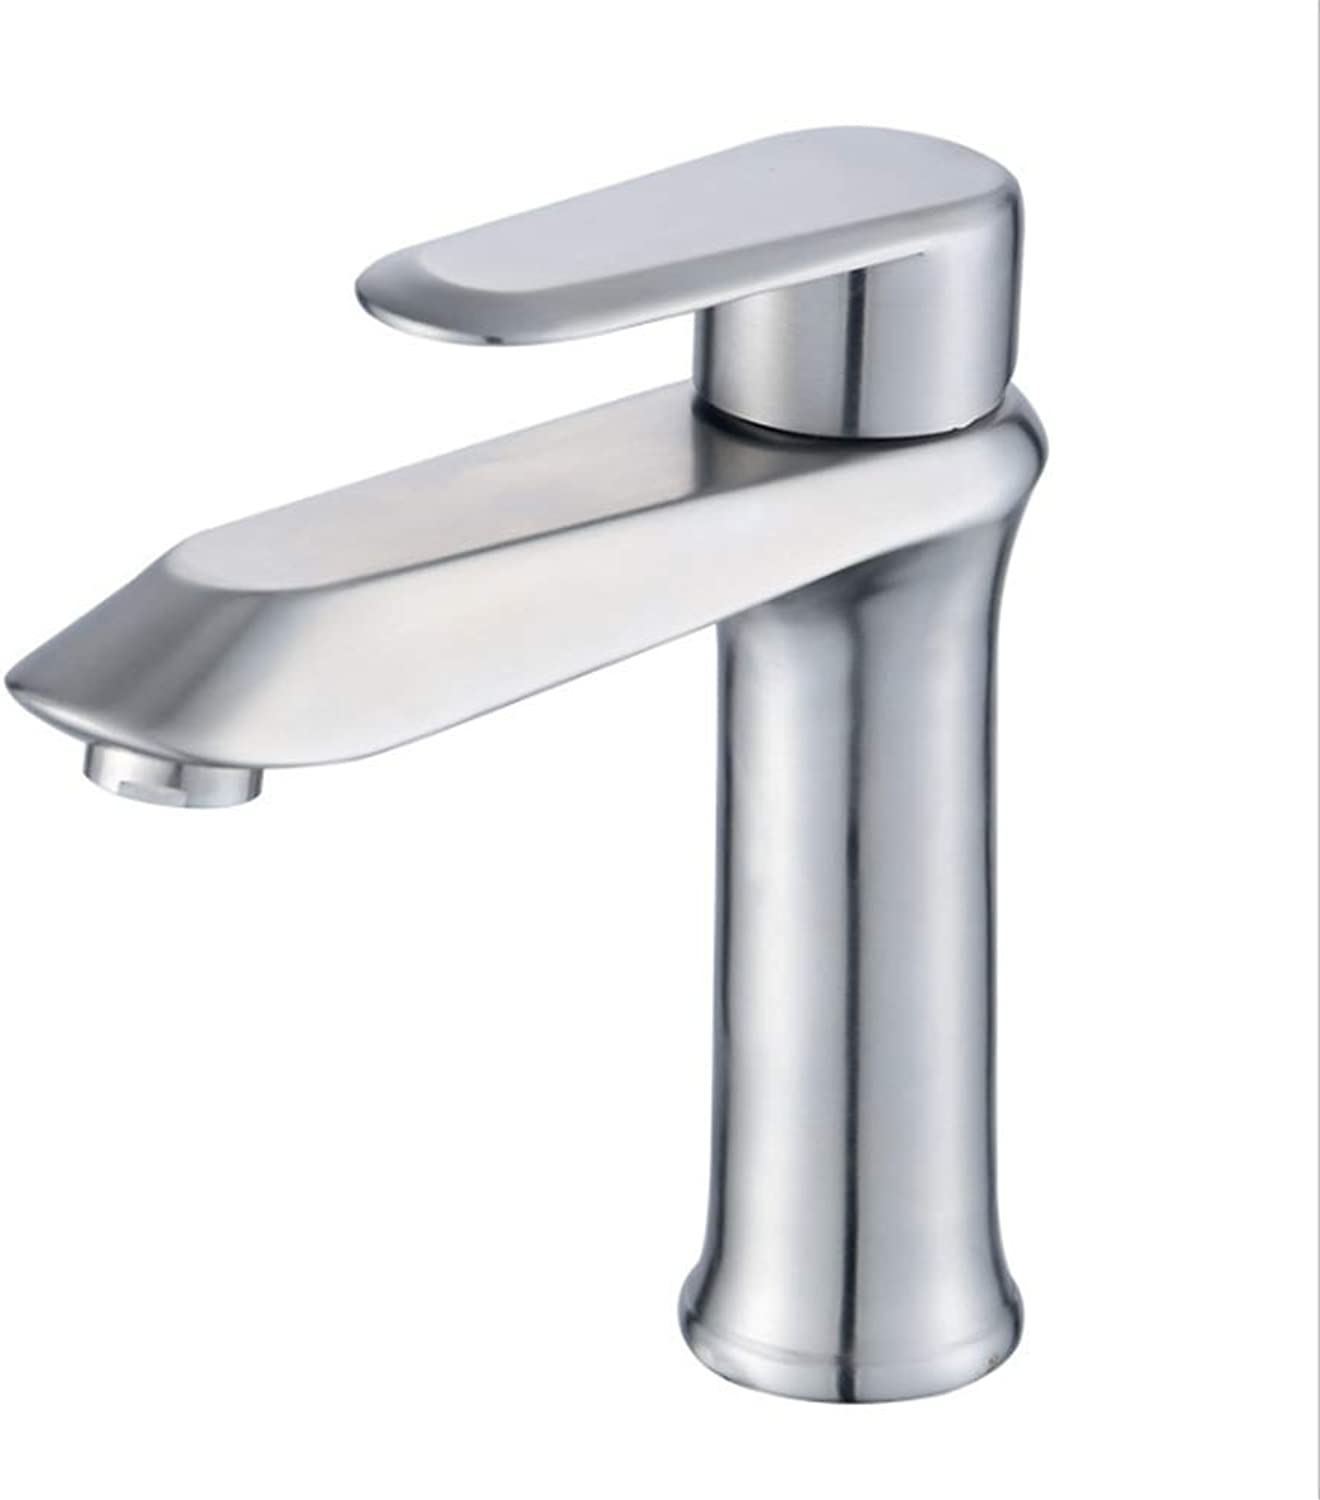 Kitchen Taps Faucet Modern Kitchen Sink Taps Stainless Steel304 Stainless Steel Cold and Hot Water Faucet Bathroom Bathroom Bathroom Terrace Basin Wire Drawing Faucet